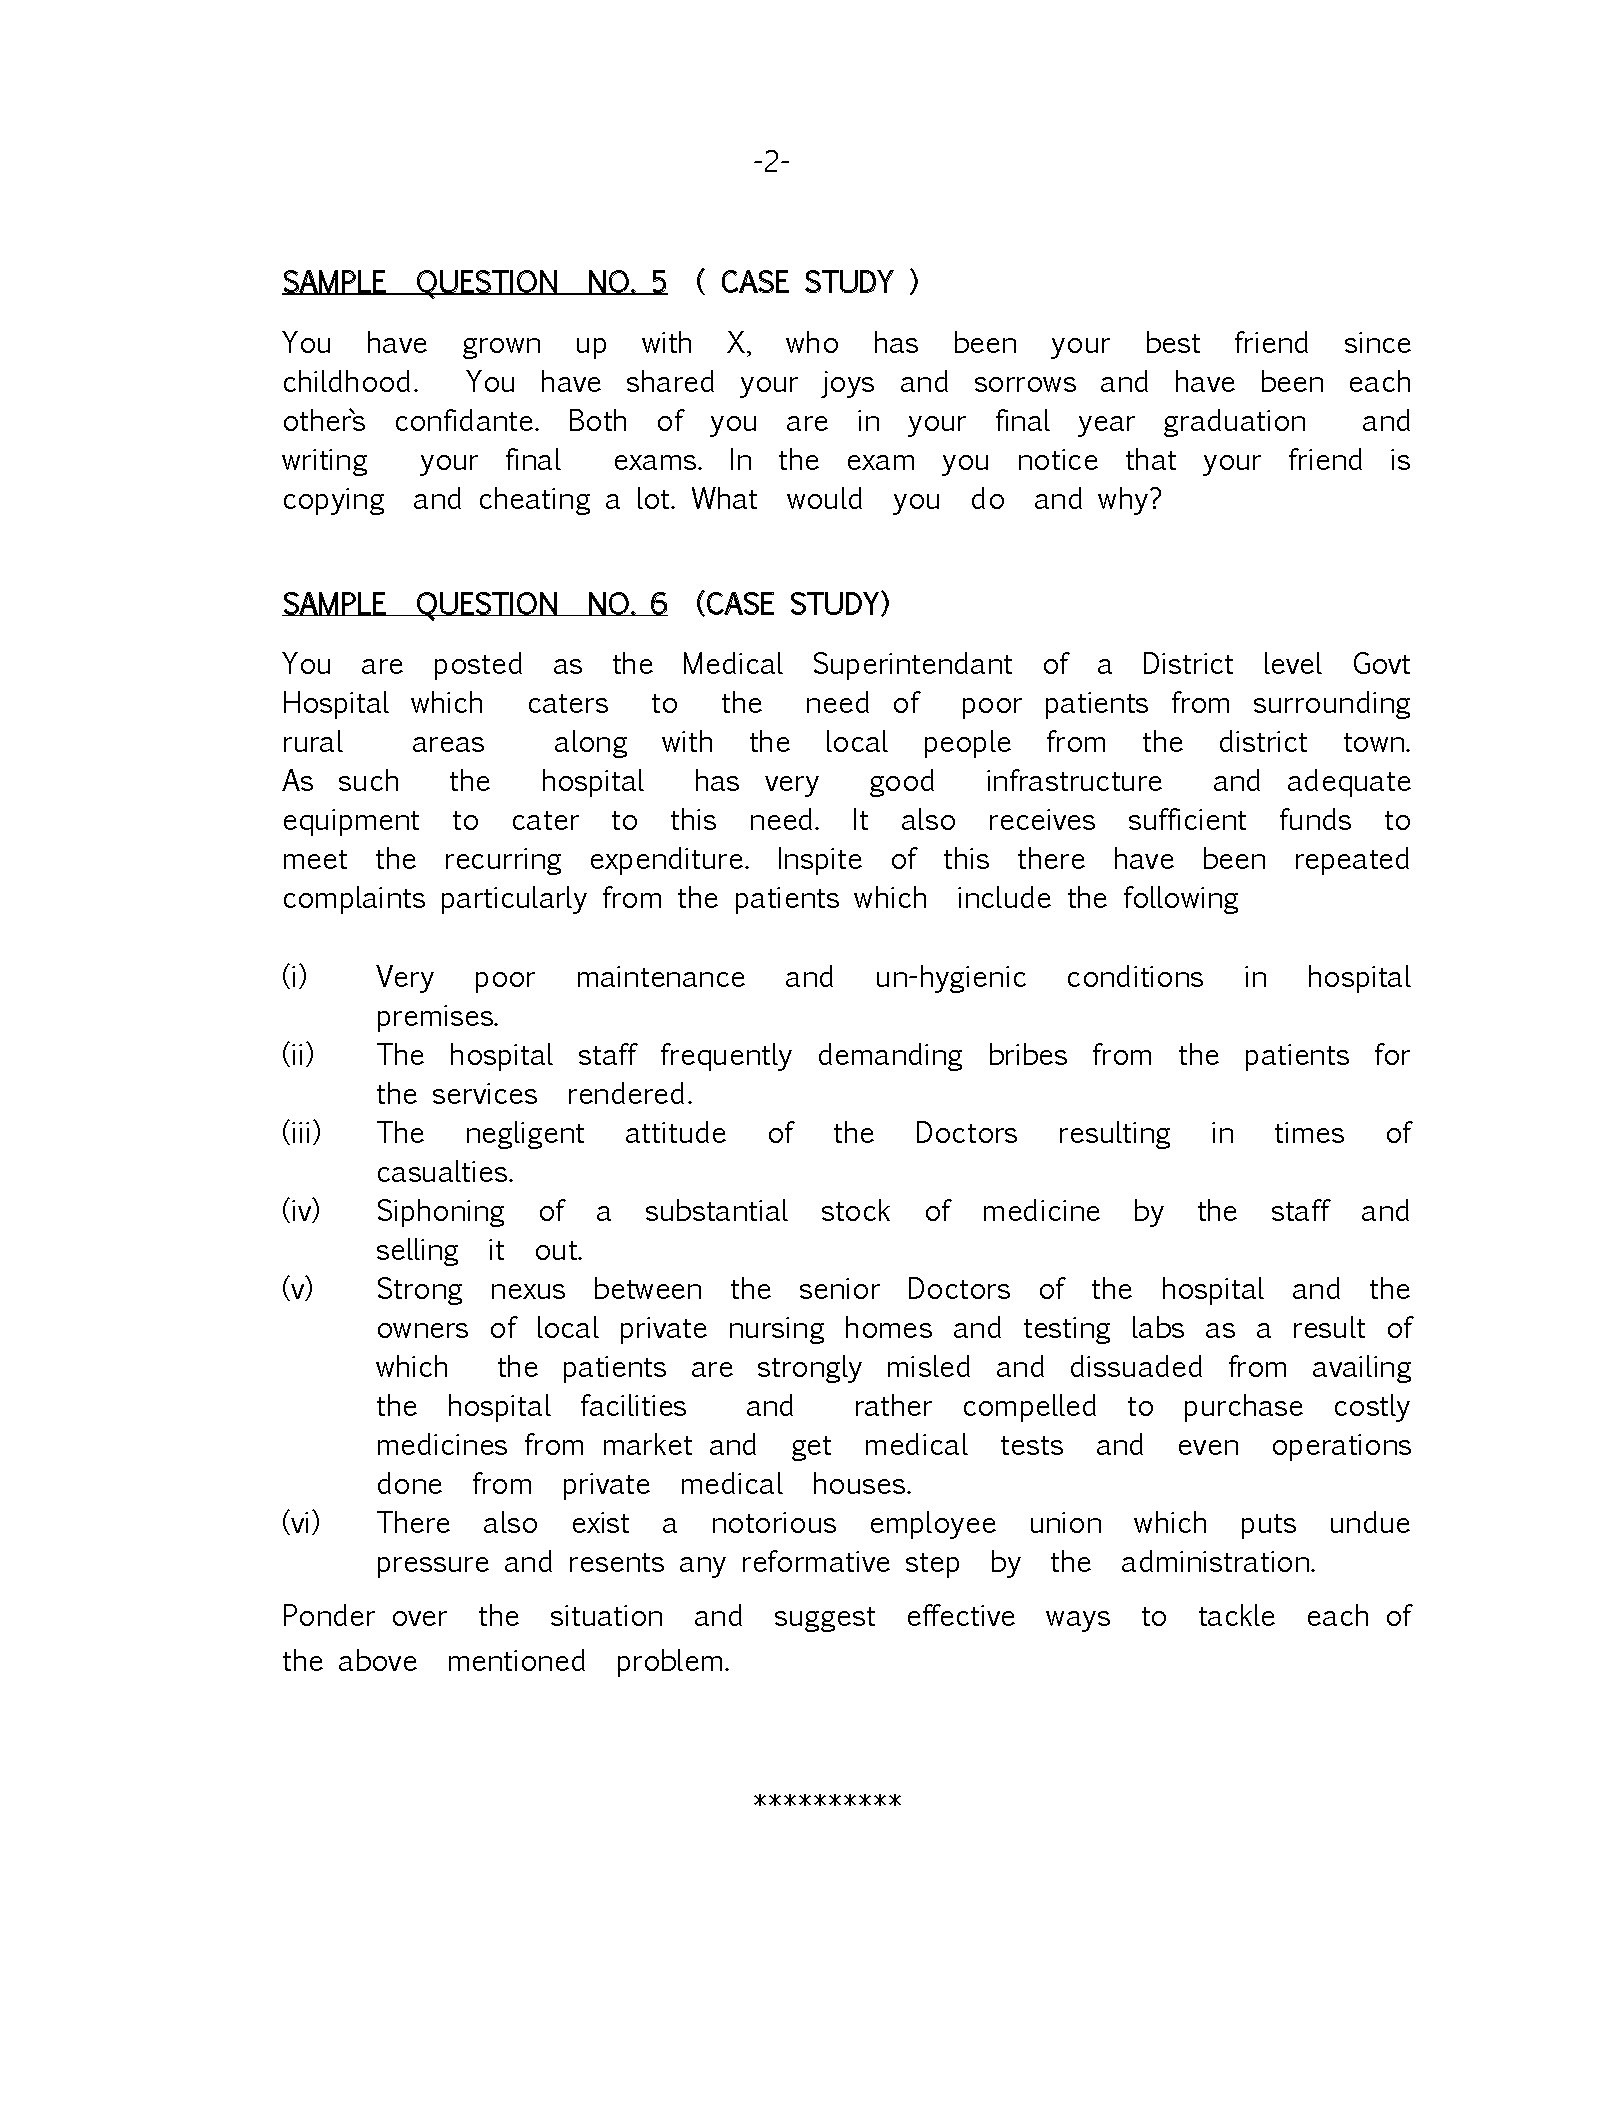 001 Ethical Argument Essay Samples Ethics Model Paper Upsc Gs V Amazing Examples Example Full